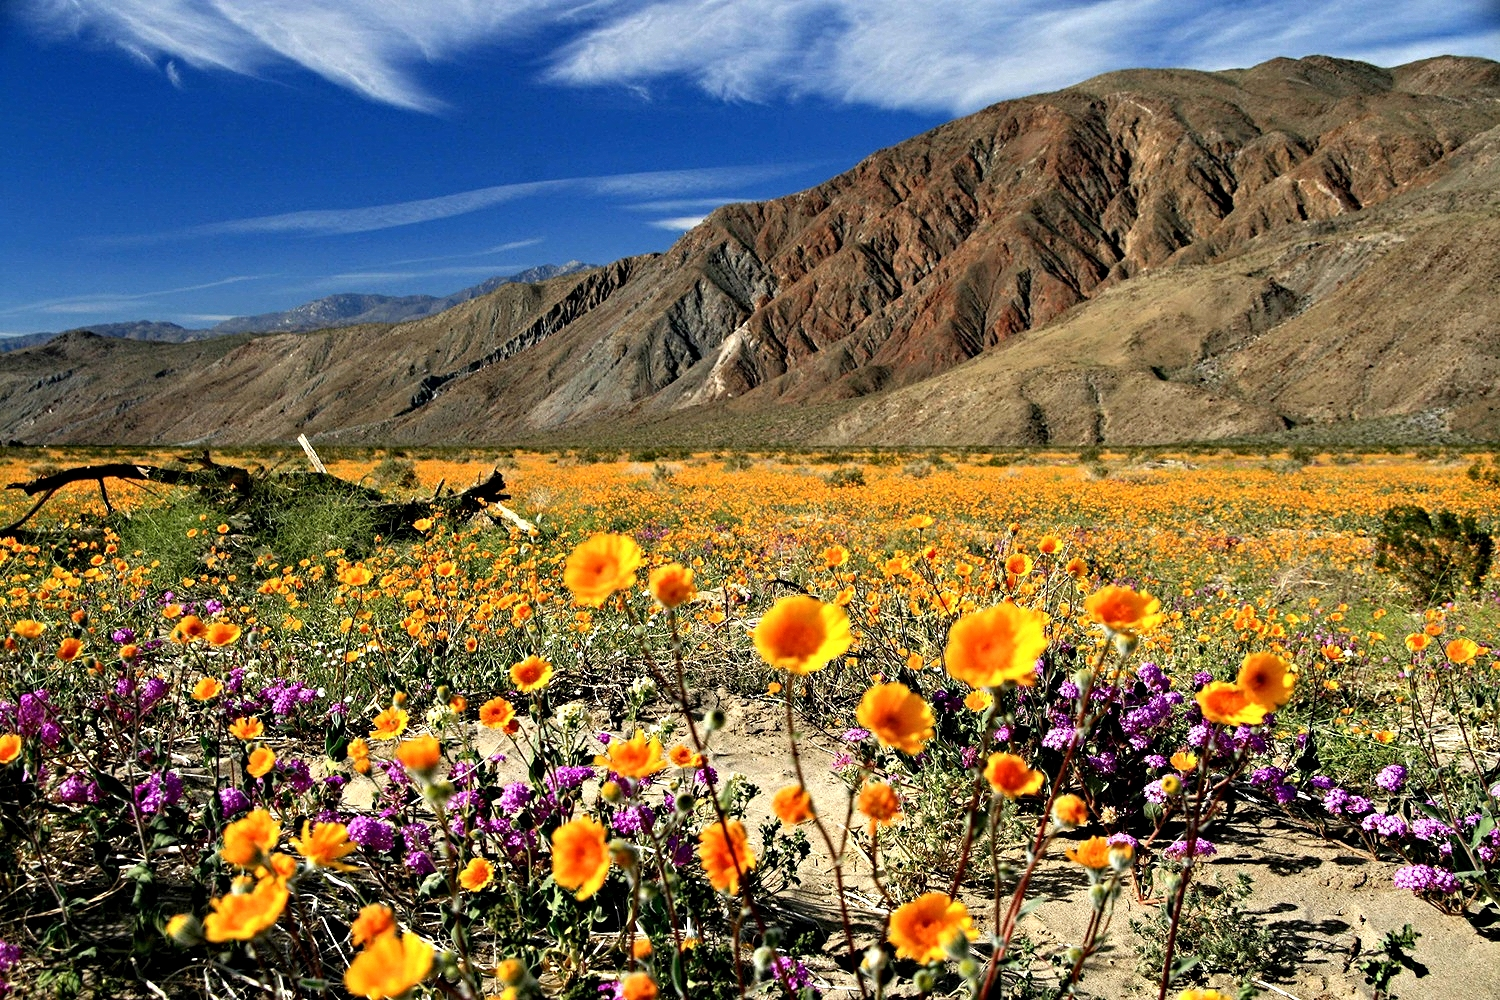 Camino Del Oro Parking Anza Borrego Desert State Park 8 Reasons To Visit Now Ync